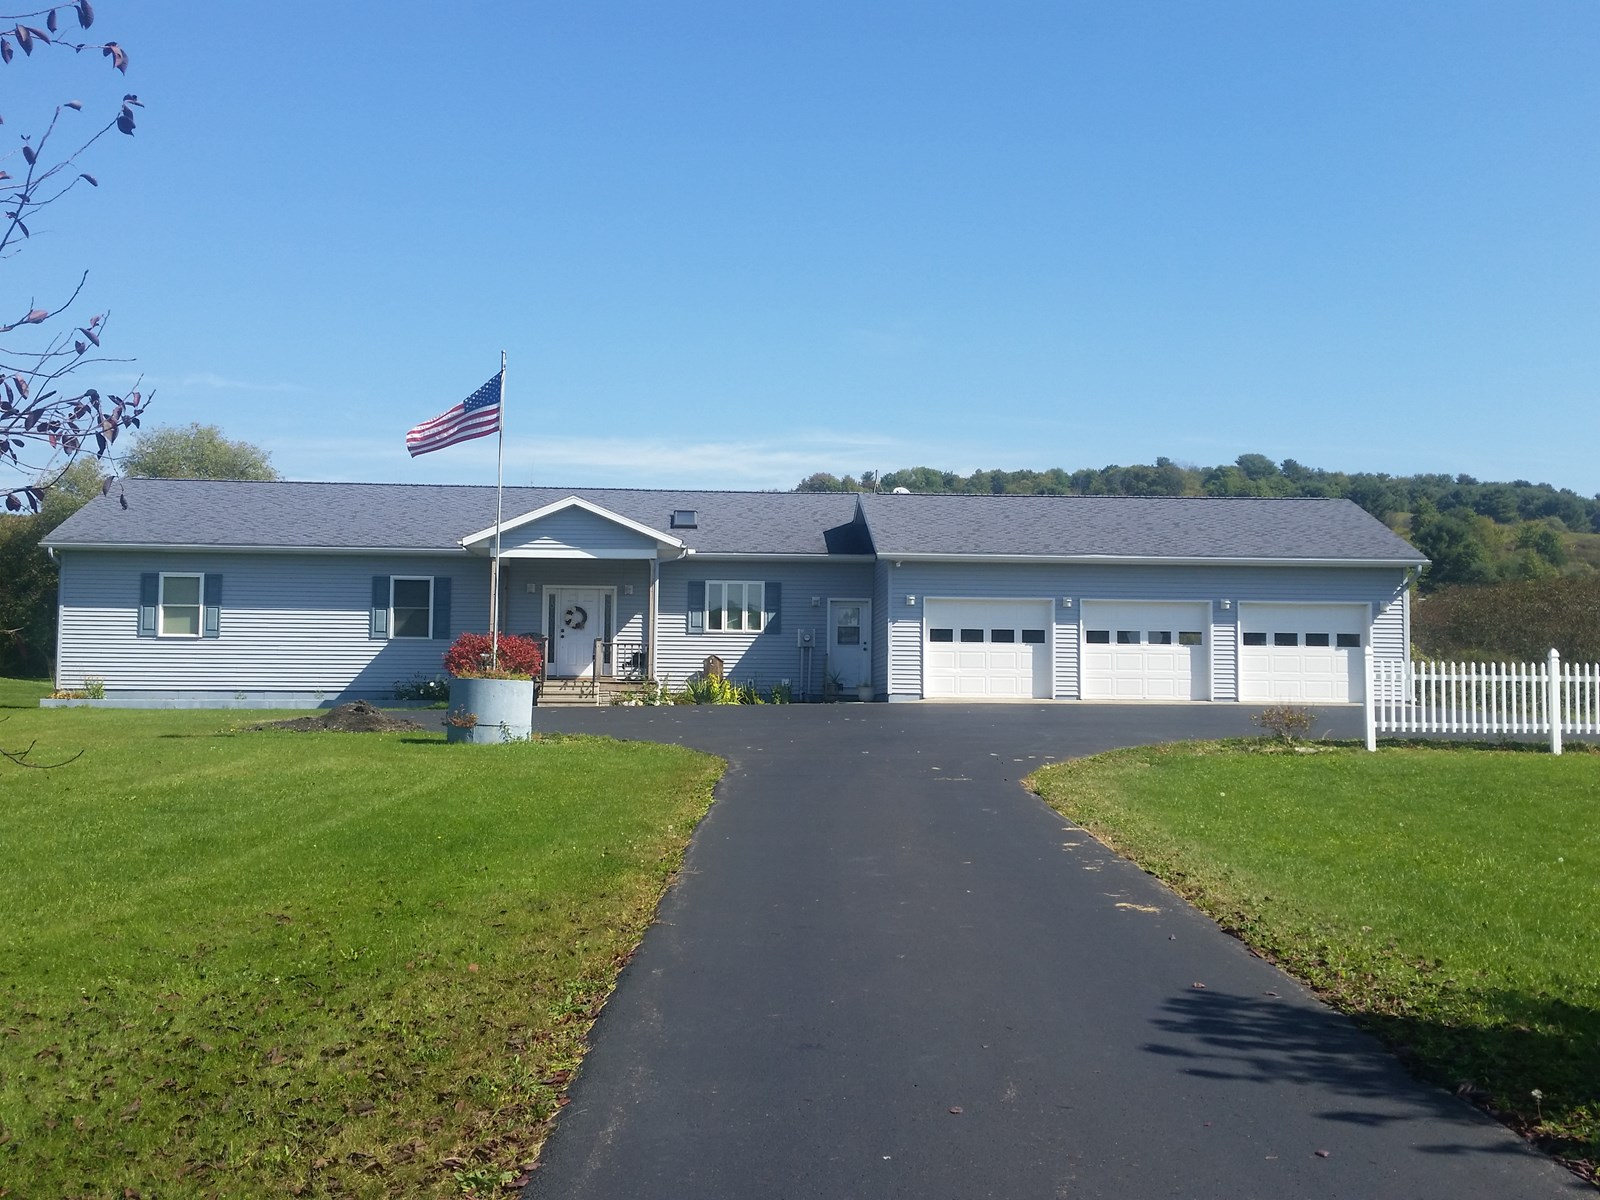 3 bed room ranch  home, UPSTATE NEW YORK,  Broome Co. .